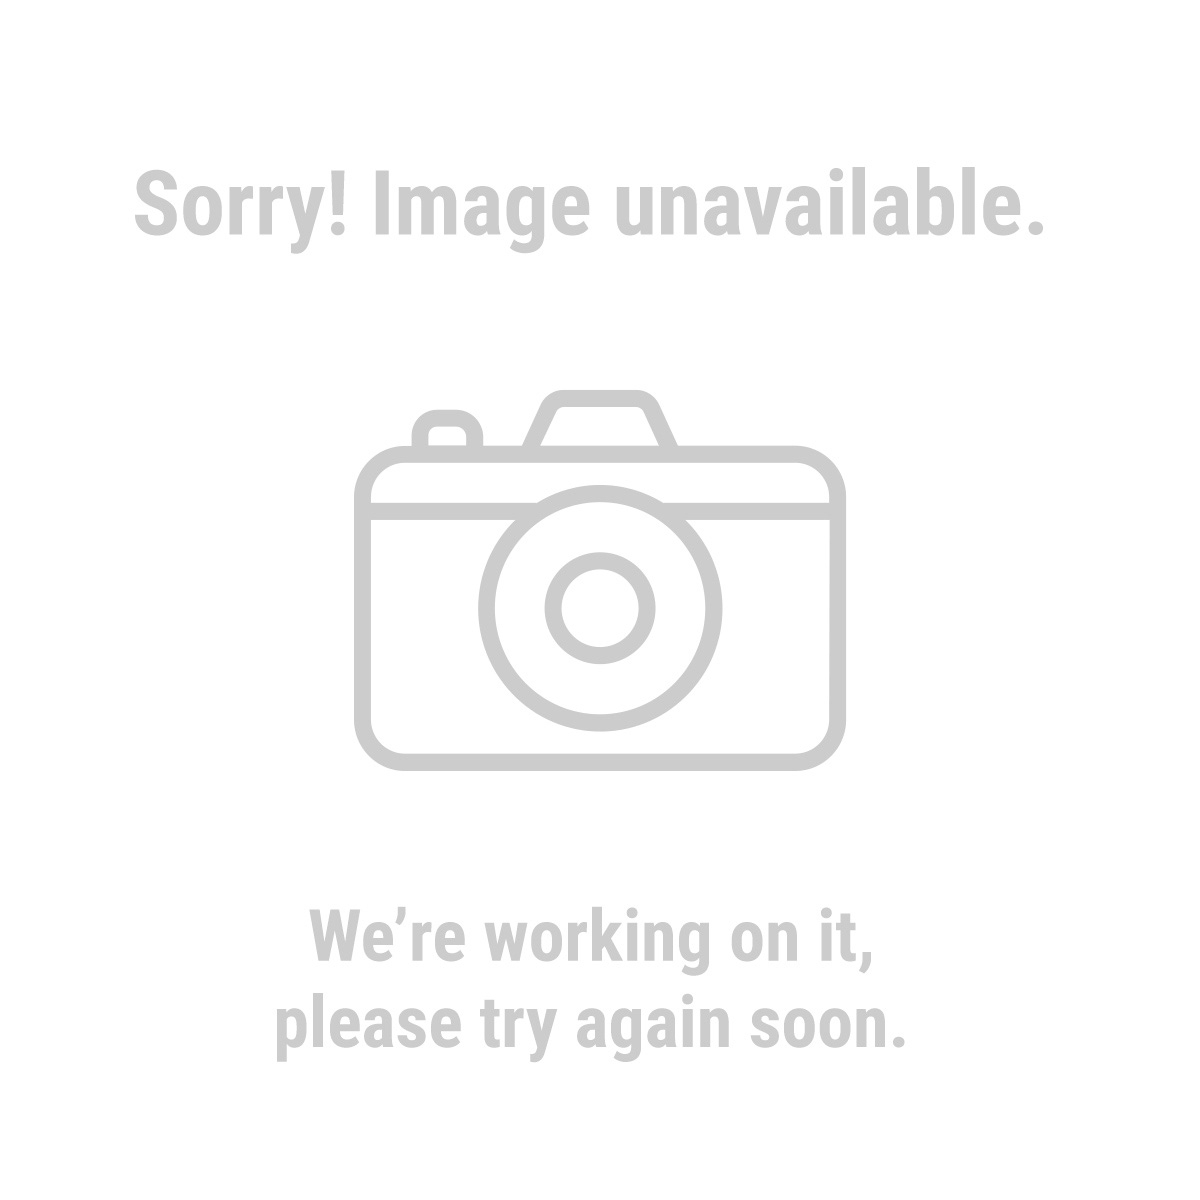 Admiral 62722 10 in. 50T Combination Circular Saw Blade with Nitro Shield™ Coating